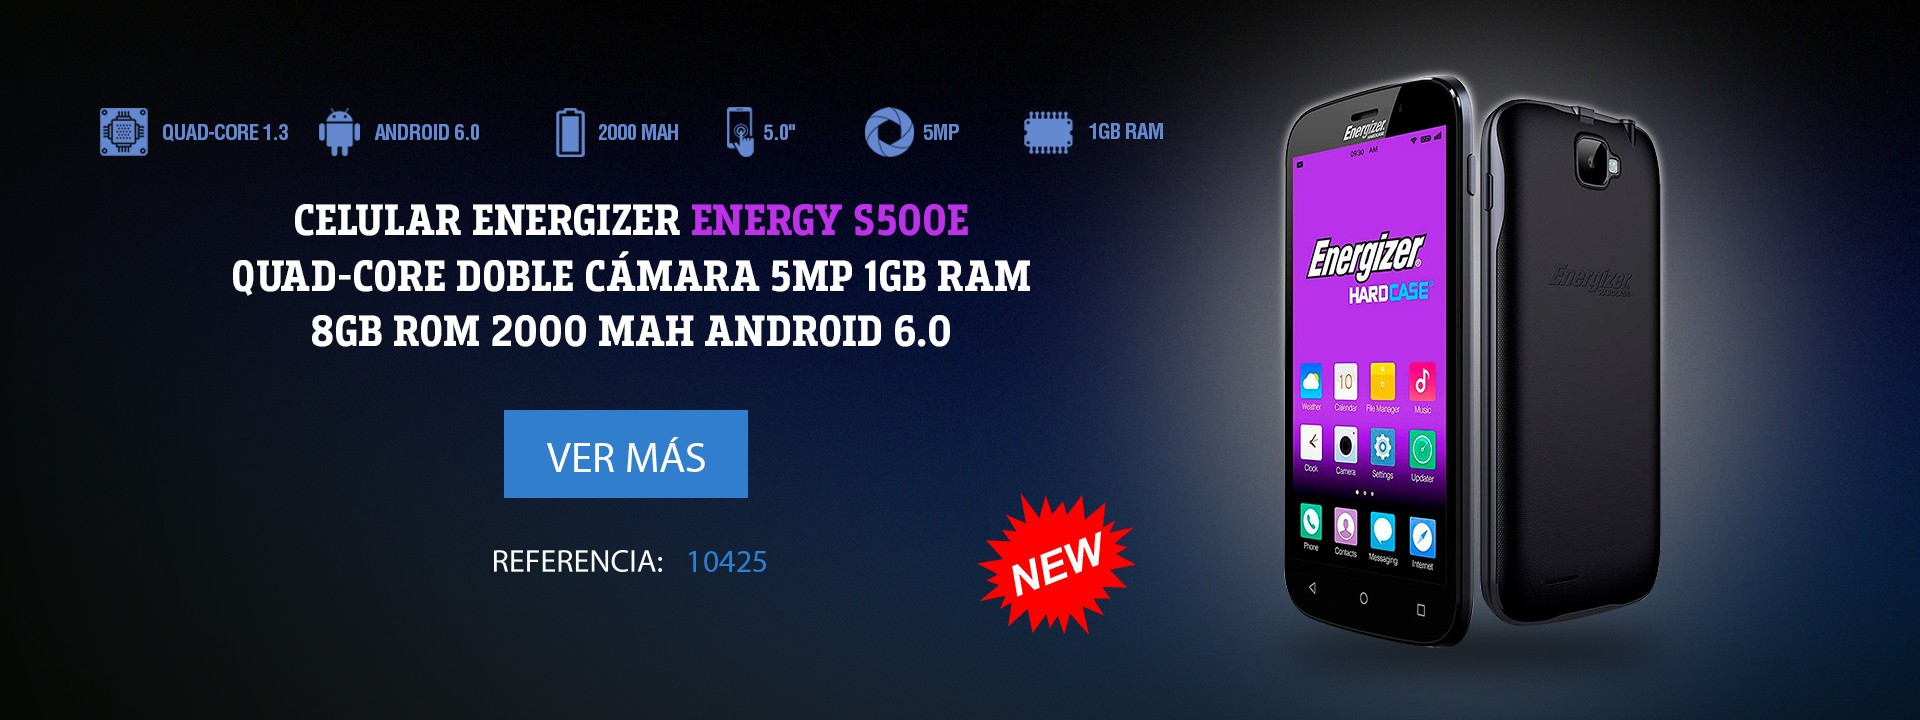 Celular Energizer Energy S500E Quad-Core Doble Cámara 5Mp 1GB Ram 8GB ROM 2000 Mah Android 6.0